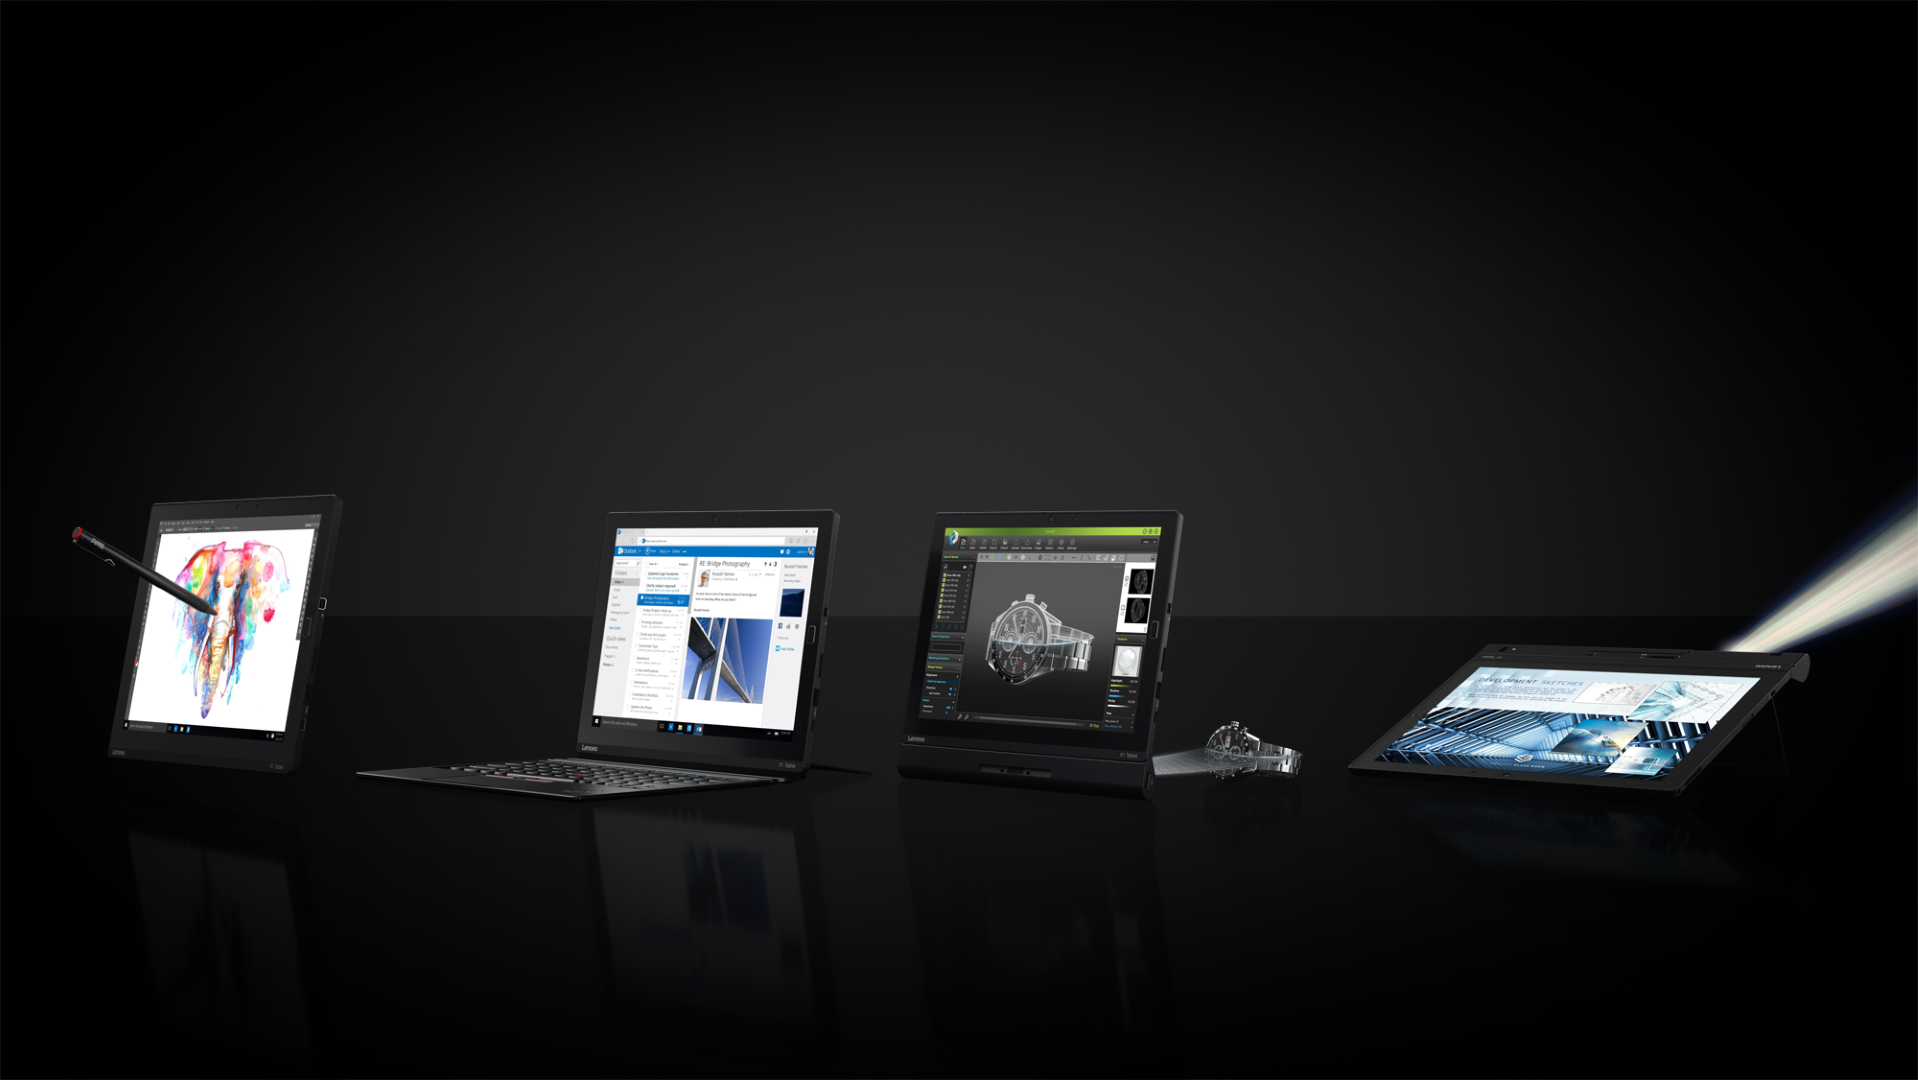 X1_Tablet_Family (Large)